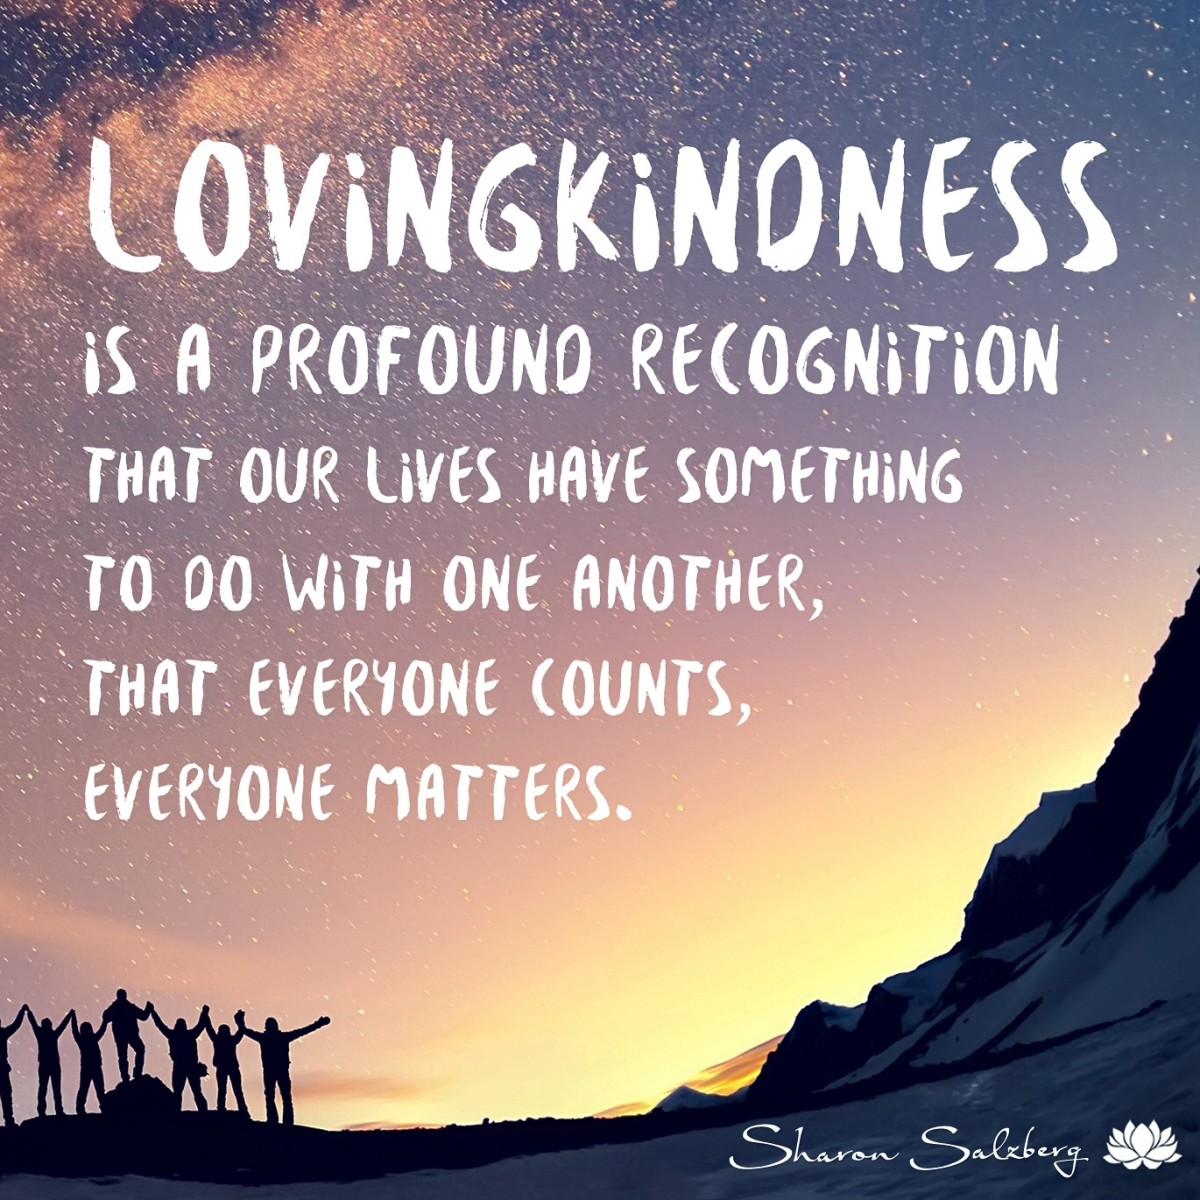 to-love-kindness